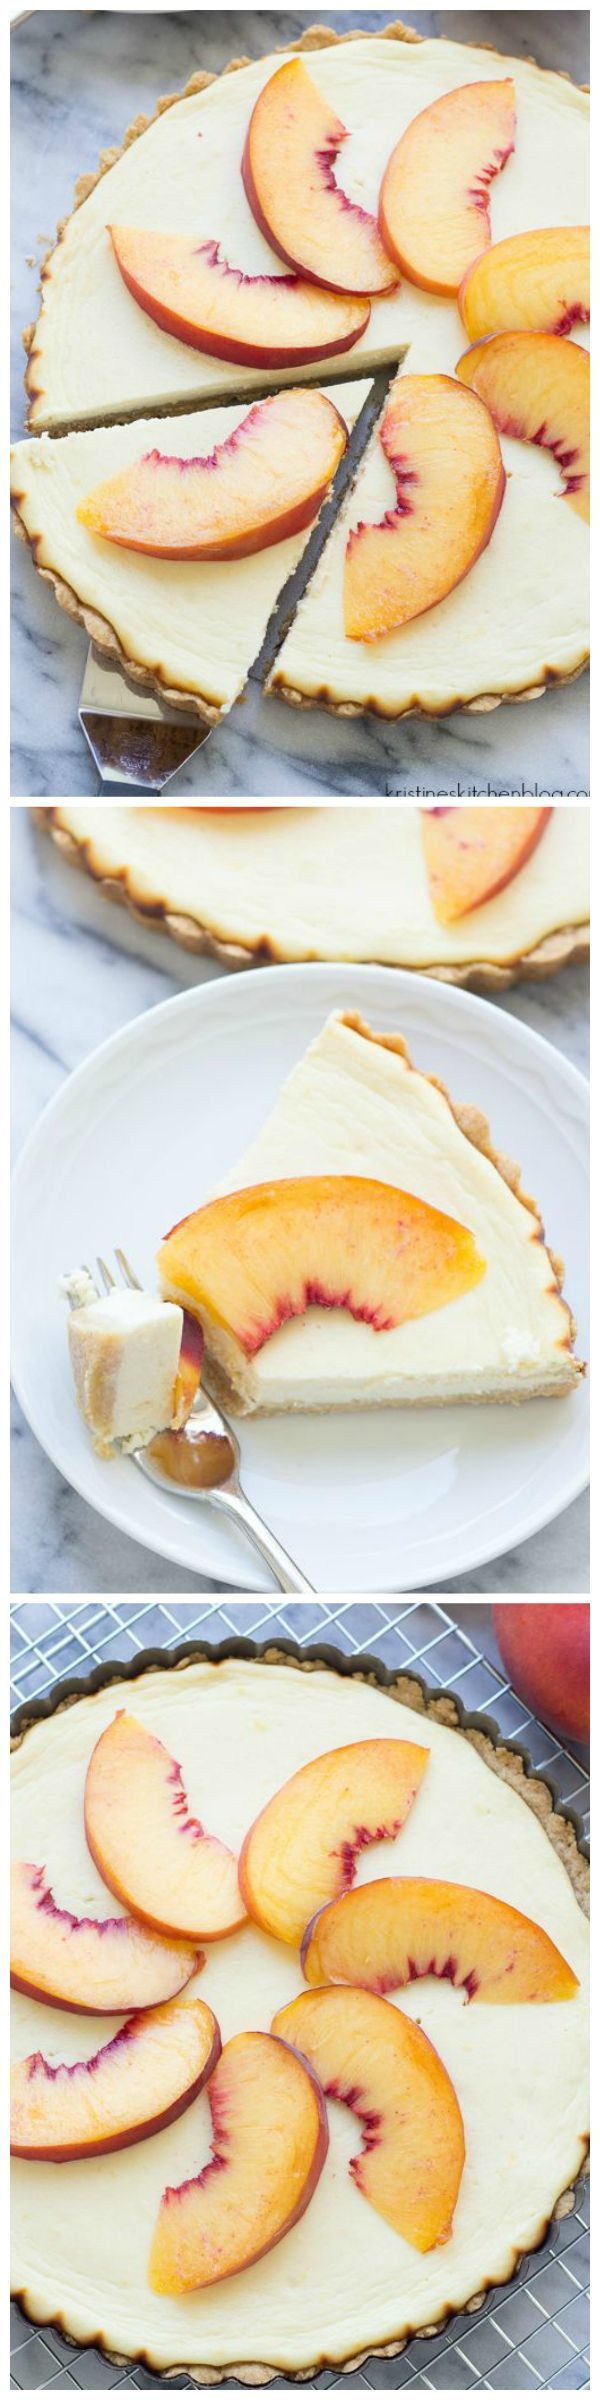 This Greek Yogurt Cheesecake Tart with Peaches has a press-in-the-pan shortbread crust. A lightened up way to enjoy cheesecake!